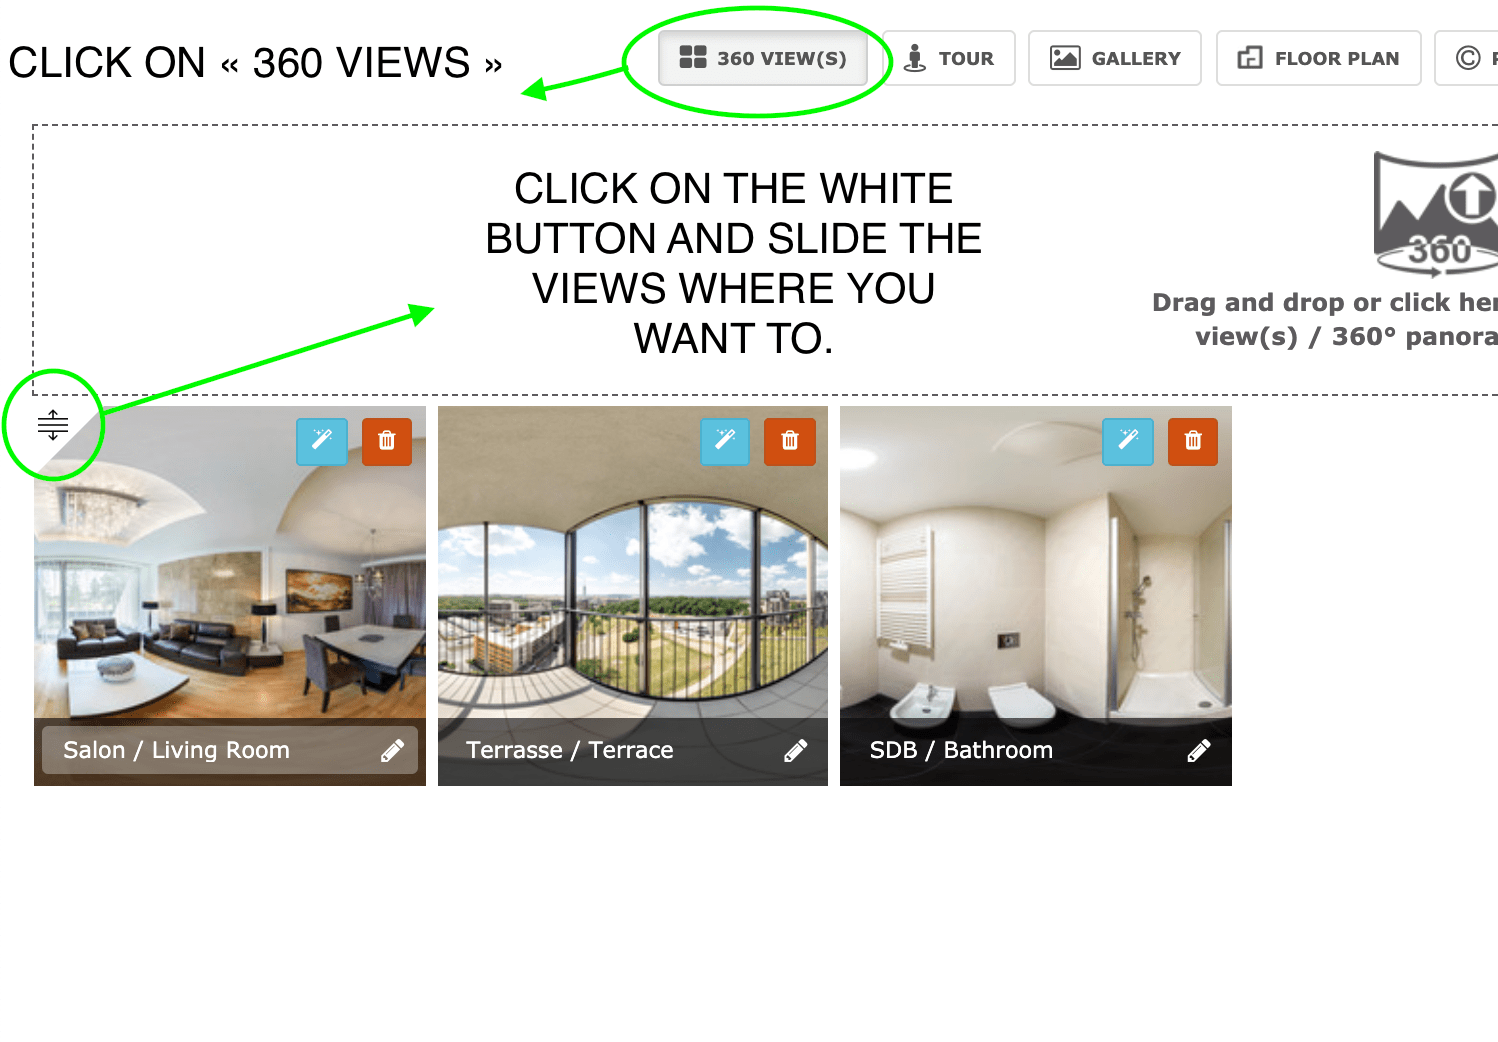 Set the starting view of a virtual tour